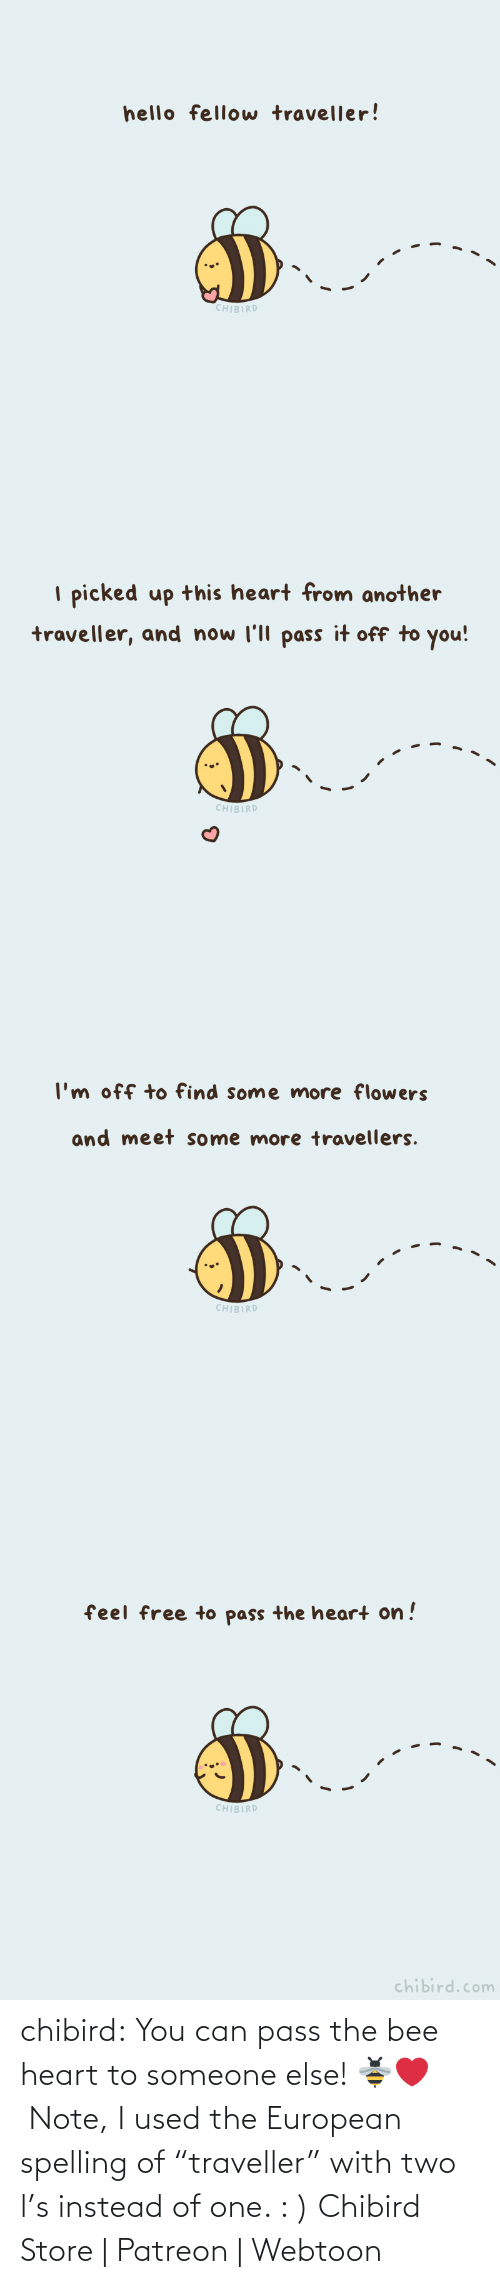 "edit: chibird:  You can pass the bee heart to someone else! 🐝❤️️ Note, I used the European spelling of ""traveller"" with two l's instead of one. : )  Chibird Store 